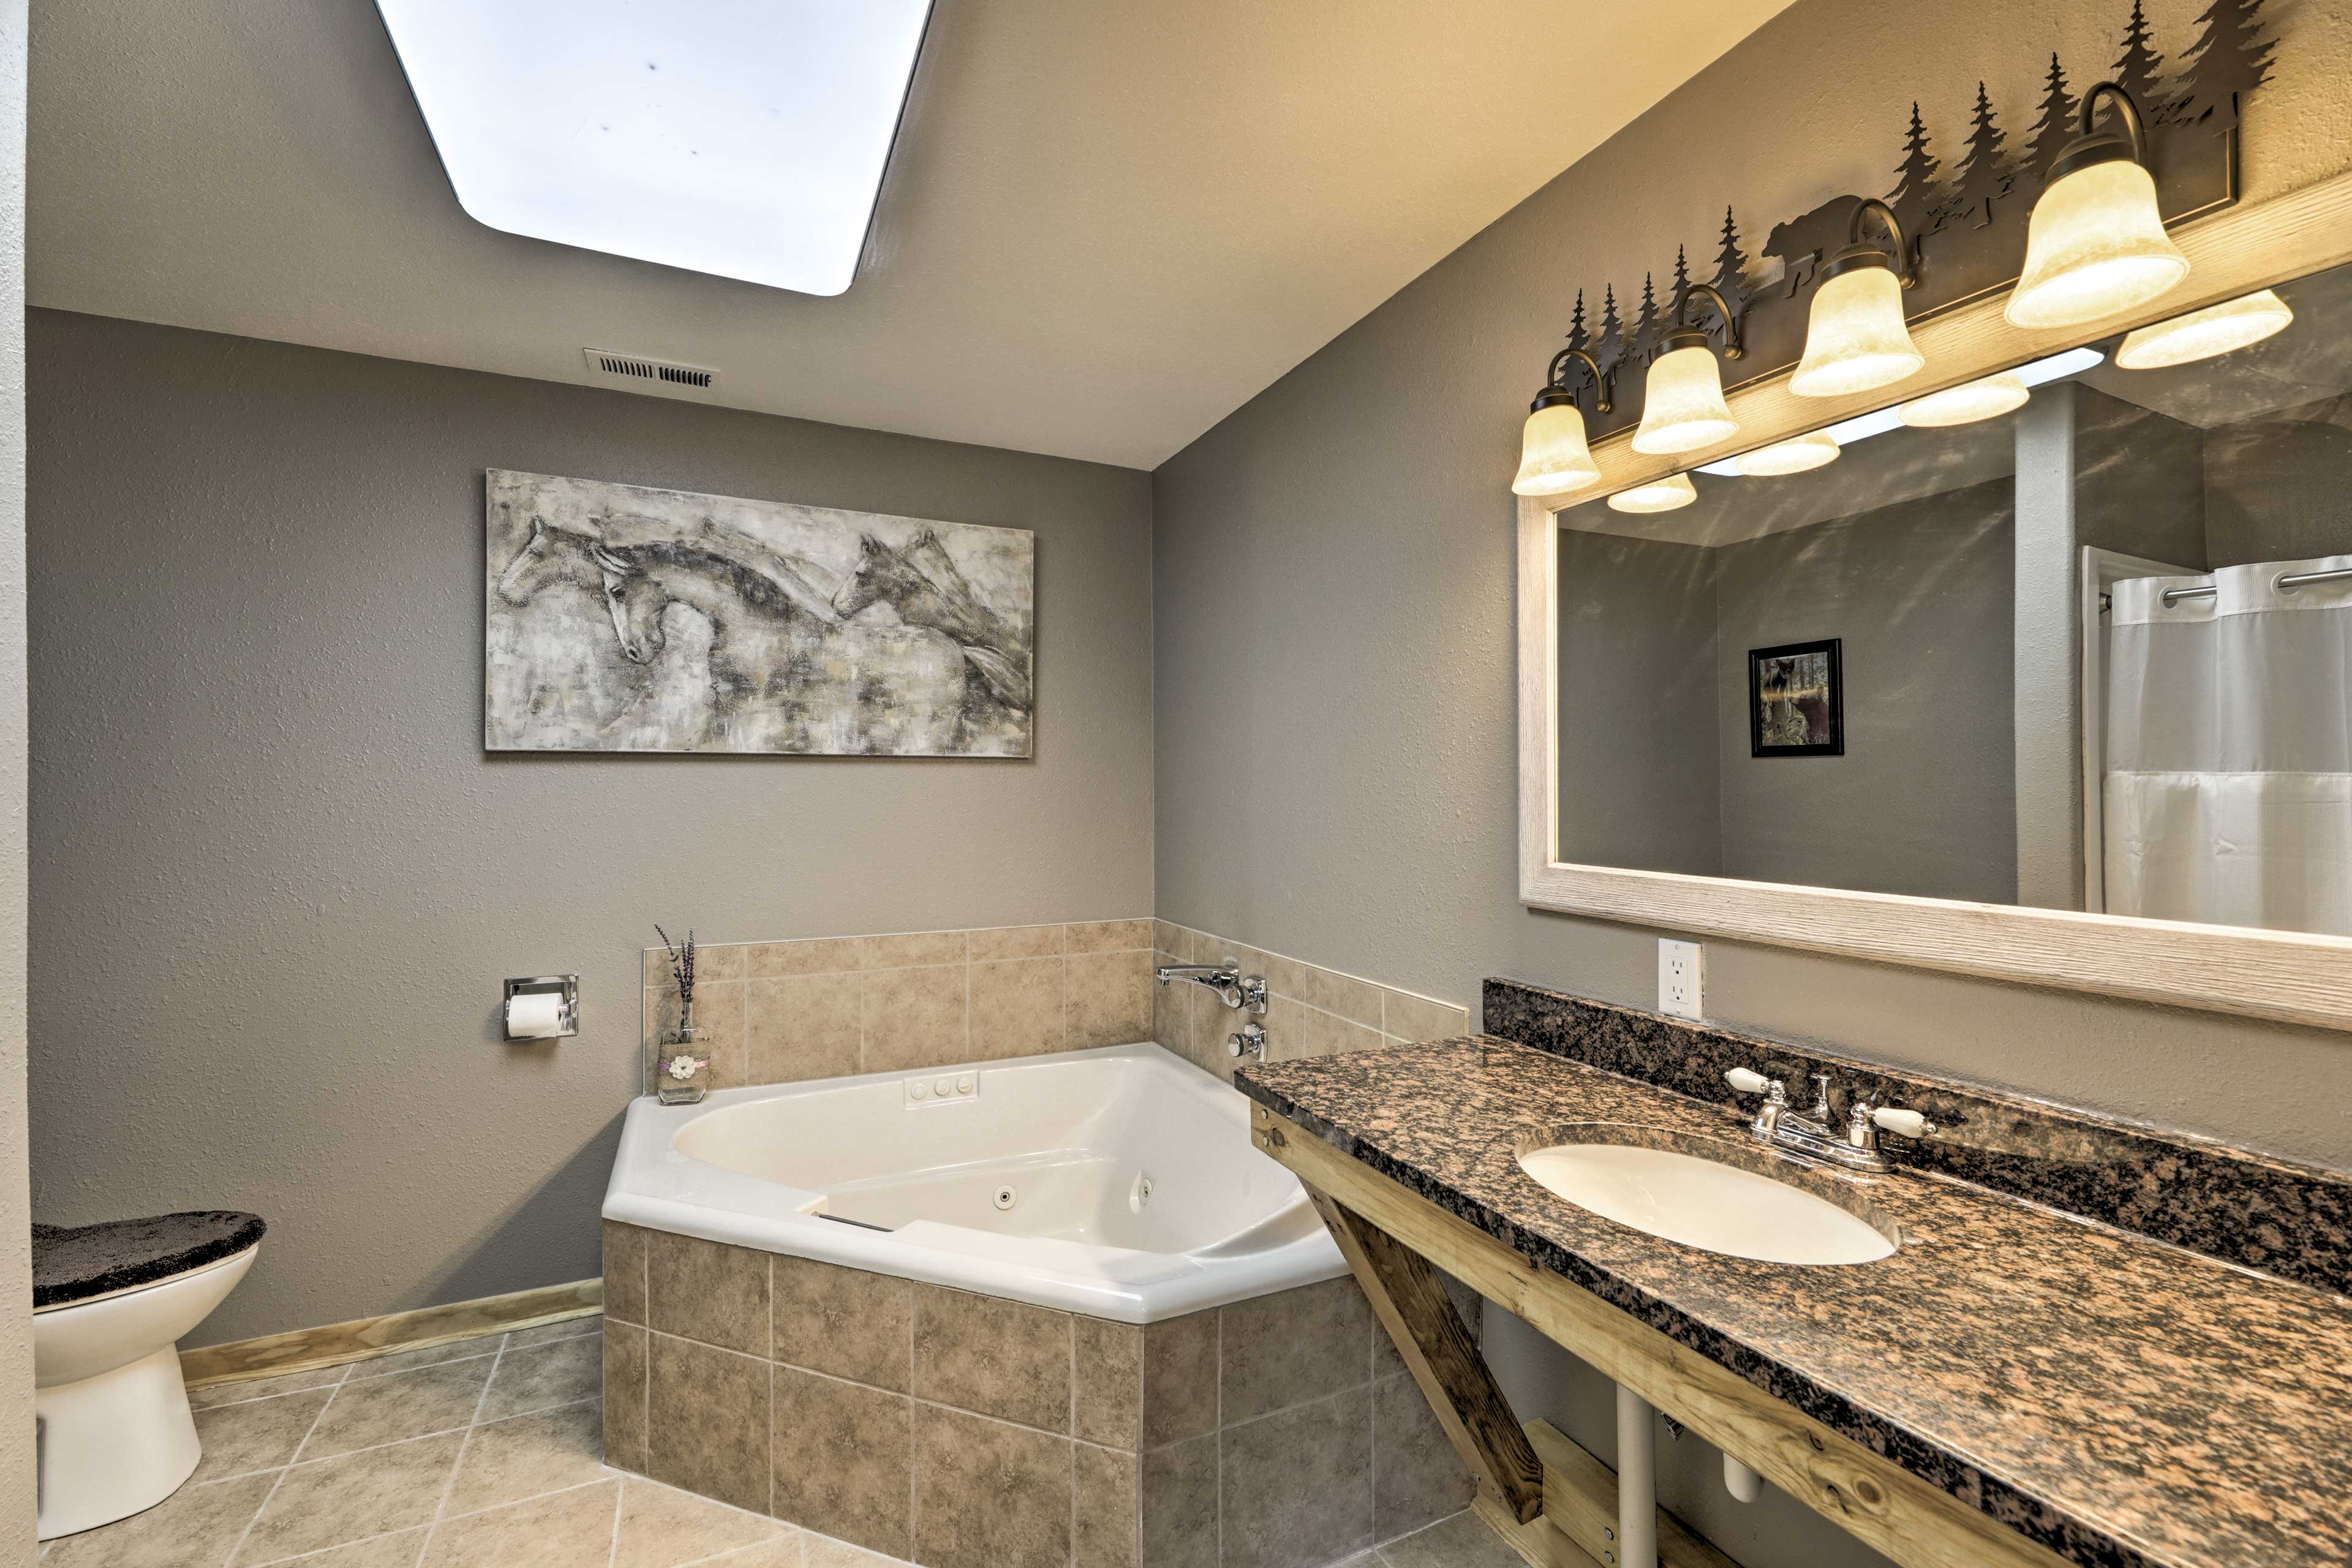 End the day with a soak in the jetted tub.